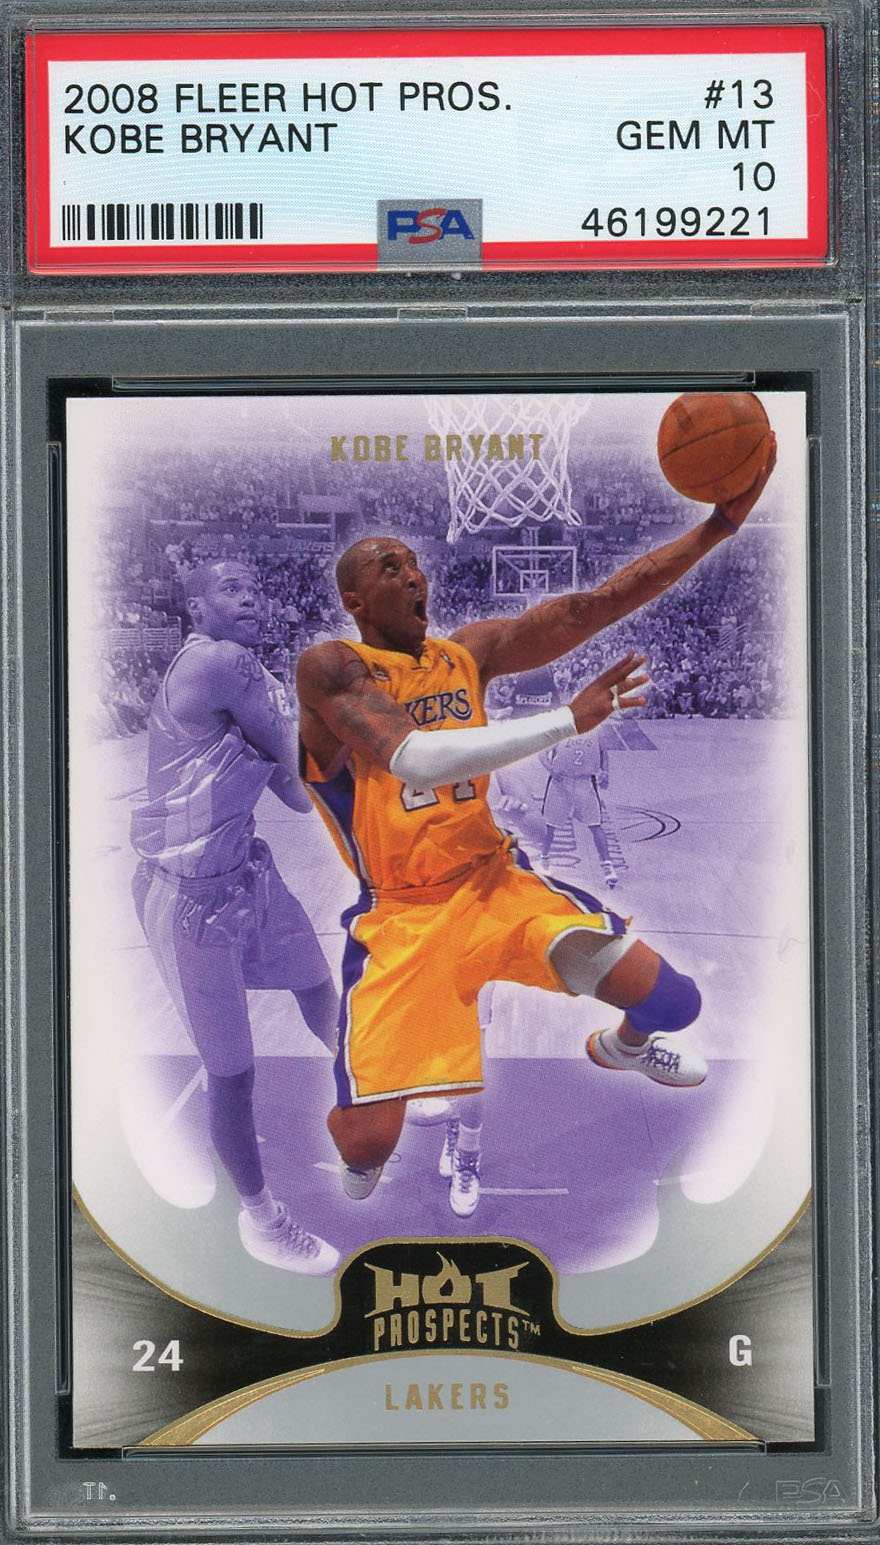 Kobe Bryant Los Angeles Lakers 2008 Fleer Hot Prospects Basketball Card #13 Graded PSA 10 GEM MINT Kobe Bryant Los Angeles Lakers 2008 Fleer Hot Prospects Basketball Card #13 Graded PSA 10 GEM MINT